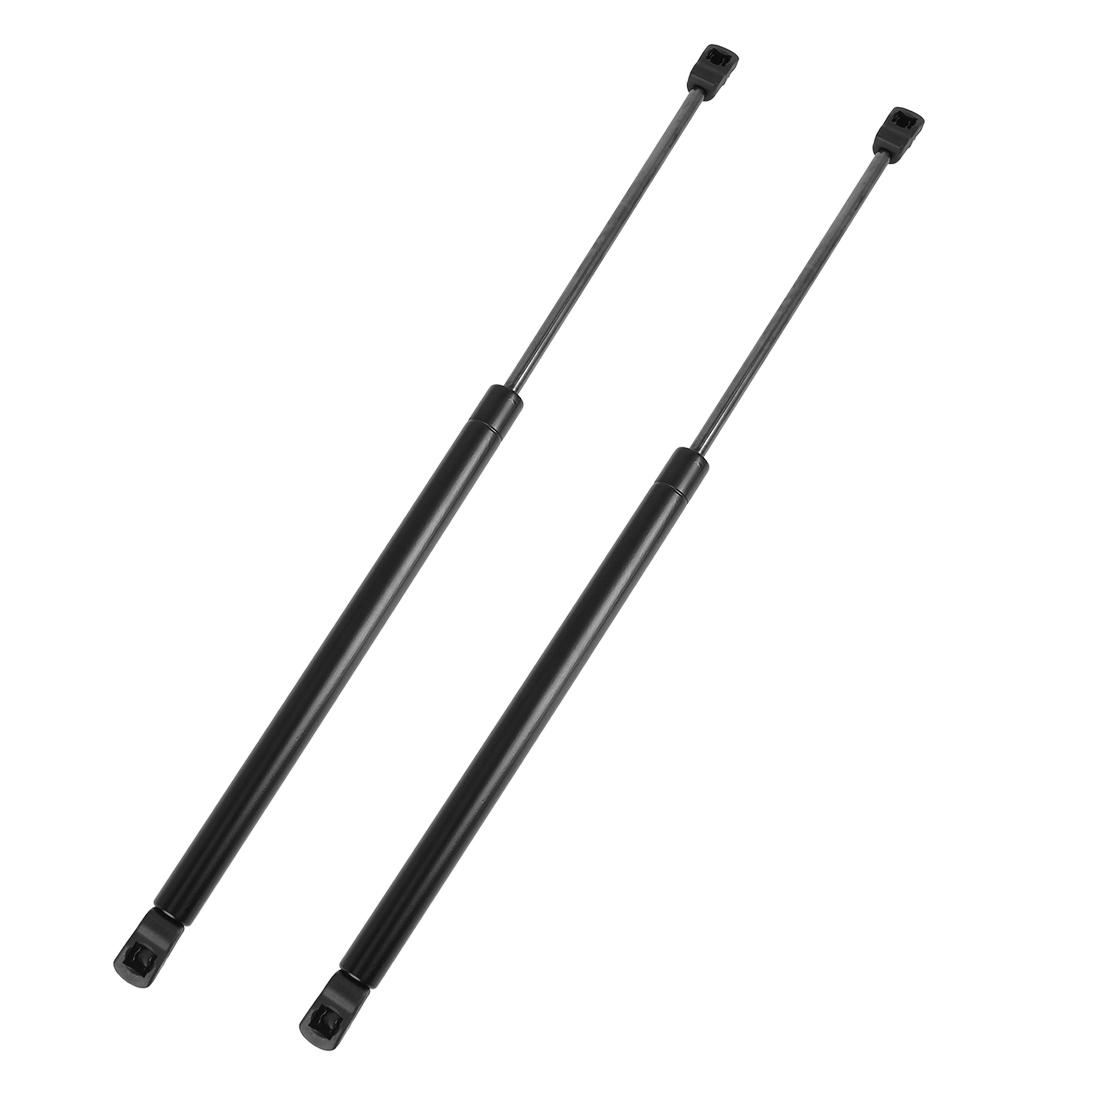 Pair Car Tailgate Rear Hatch Lift Support Struts Rod Gas Spring for Mini Cooper